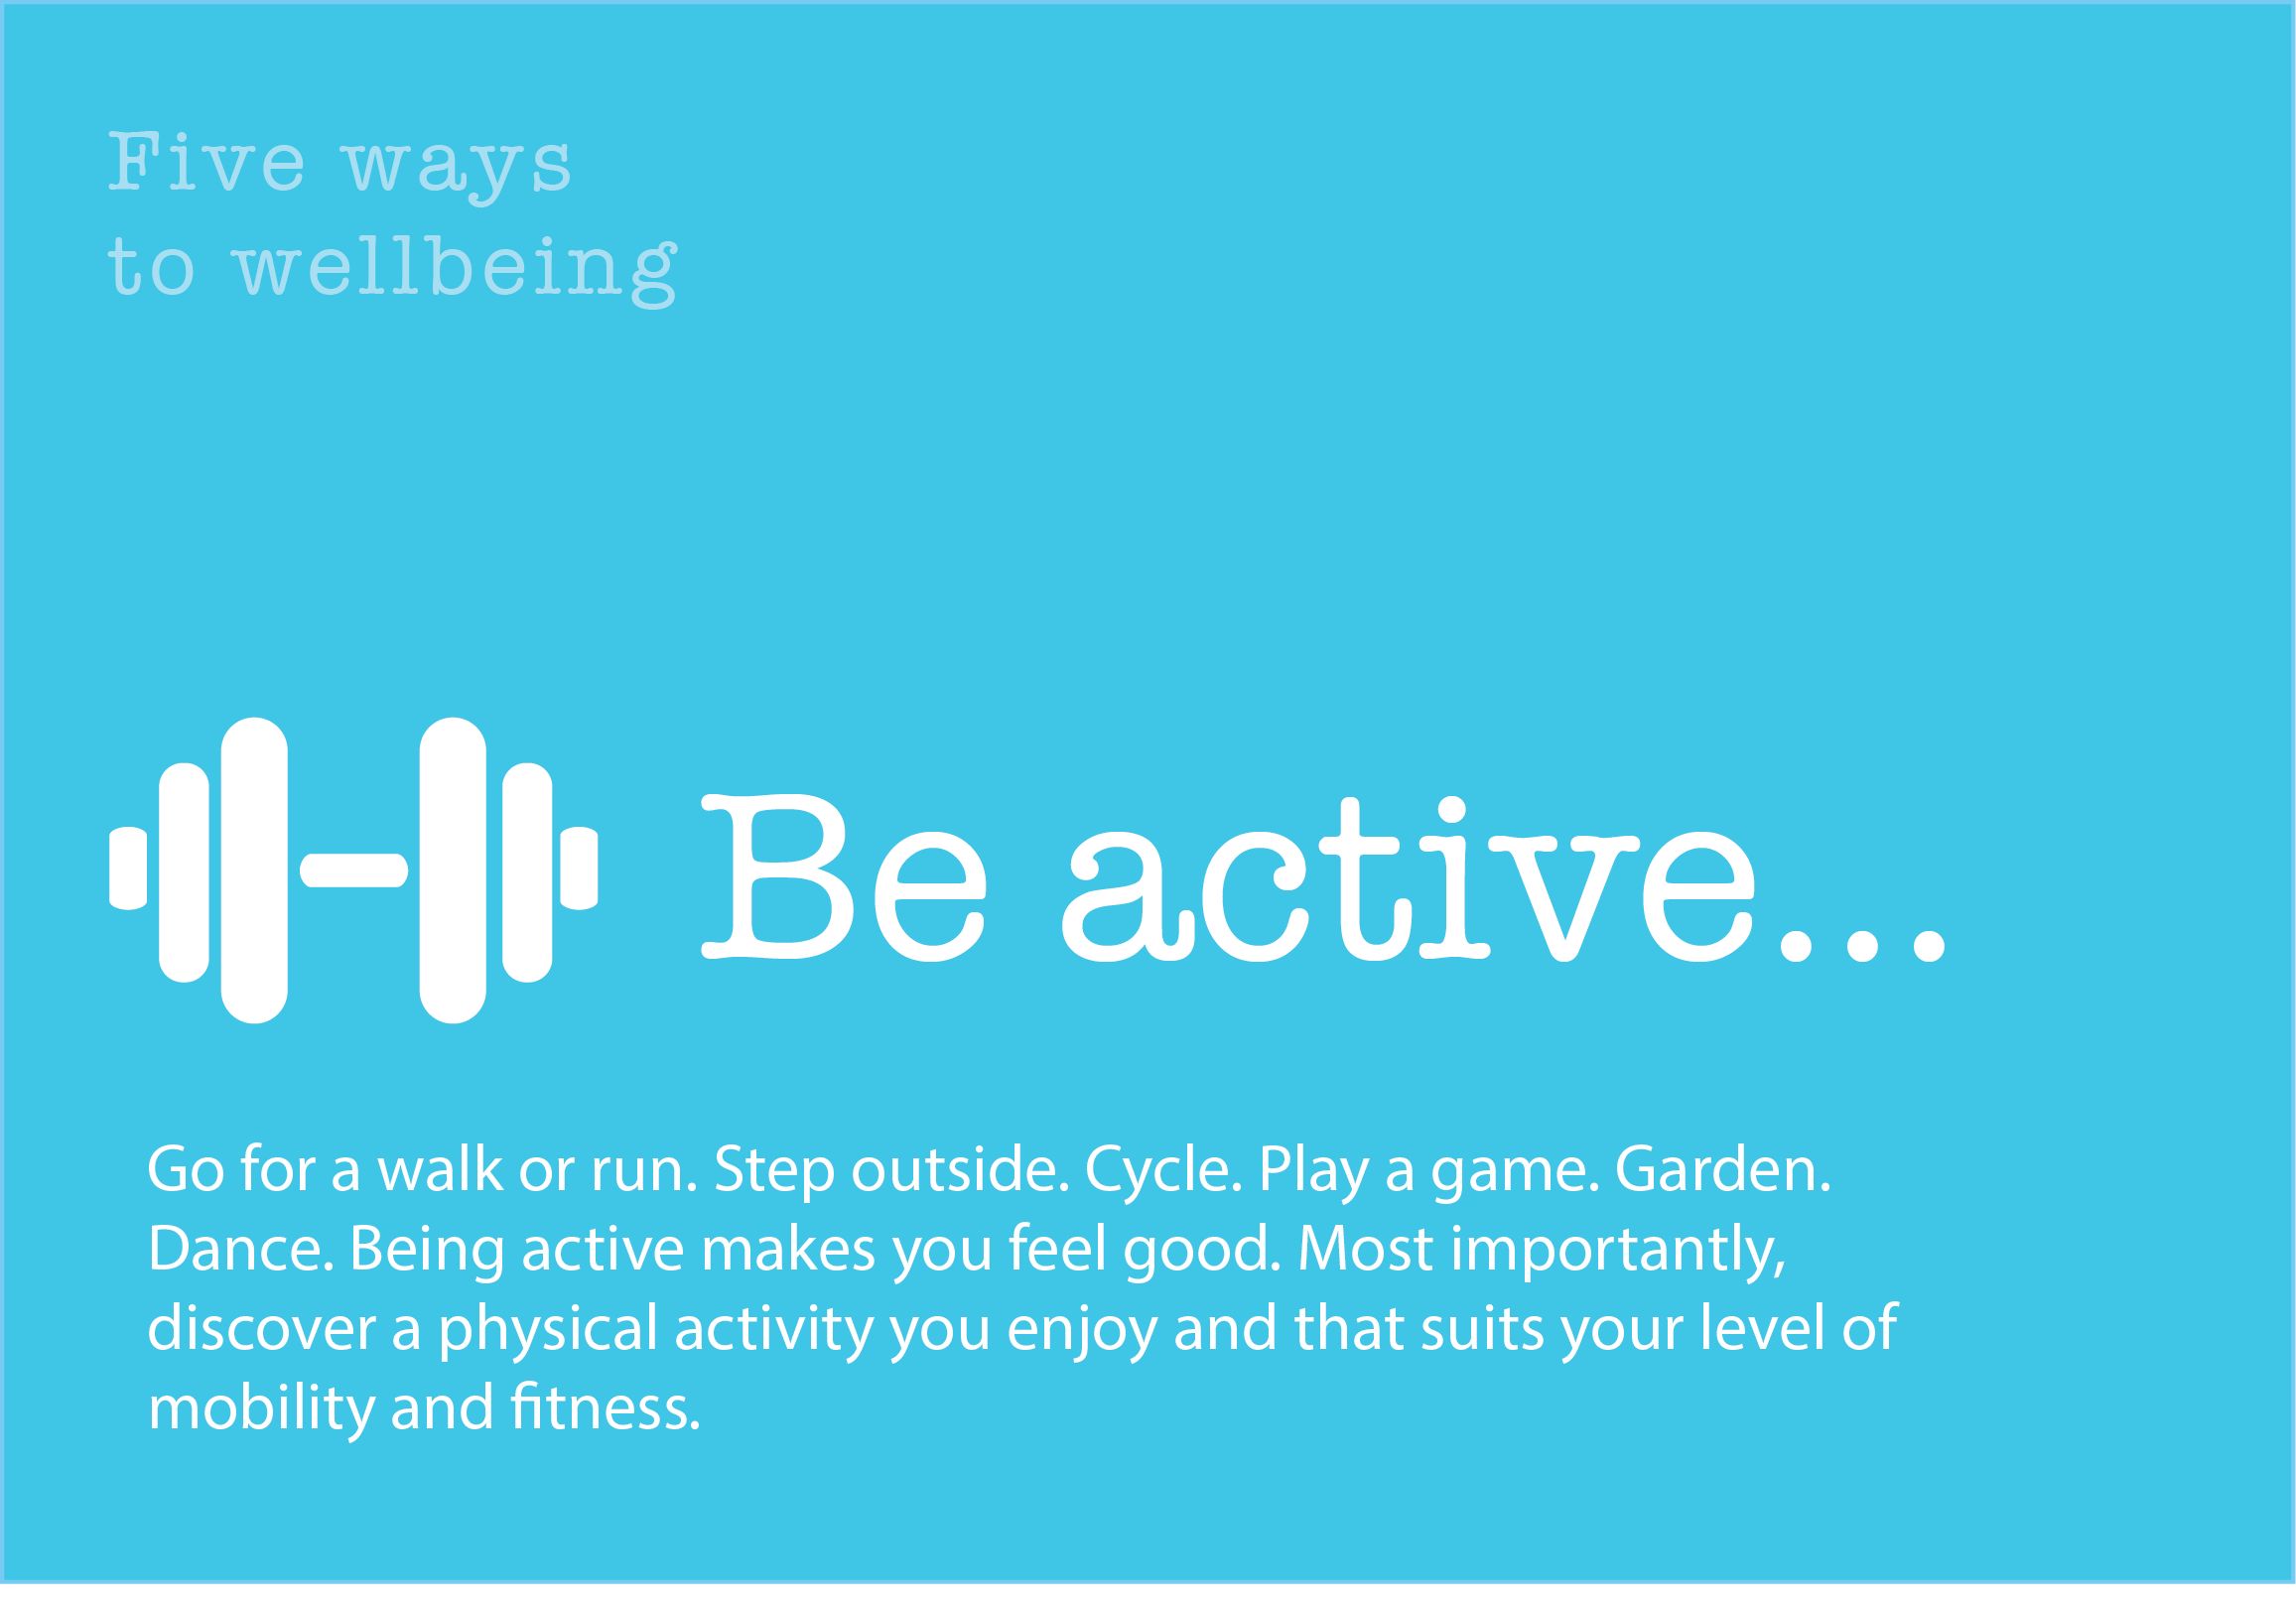 5 Ways to Wellbeing: Be Active. Go for a walk or run. Step outside. Cycle. Play a game. Garden. Dance. Being active makes you feel good. Most importantly, discover a physical activity you enjoy and that suits your level of mobility and fitness.